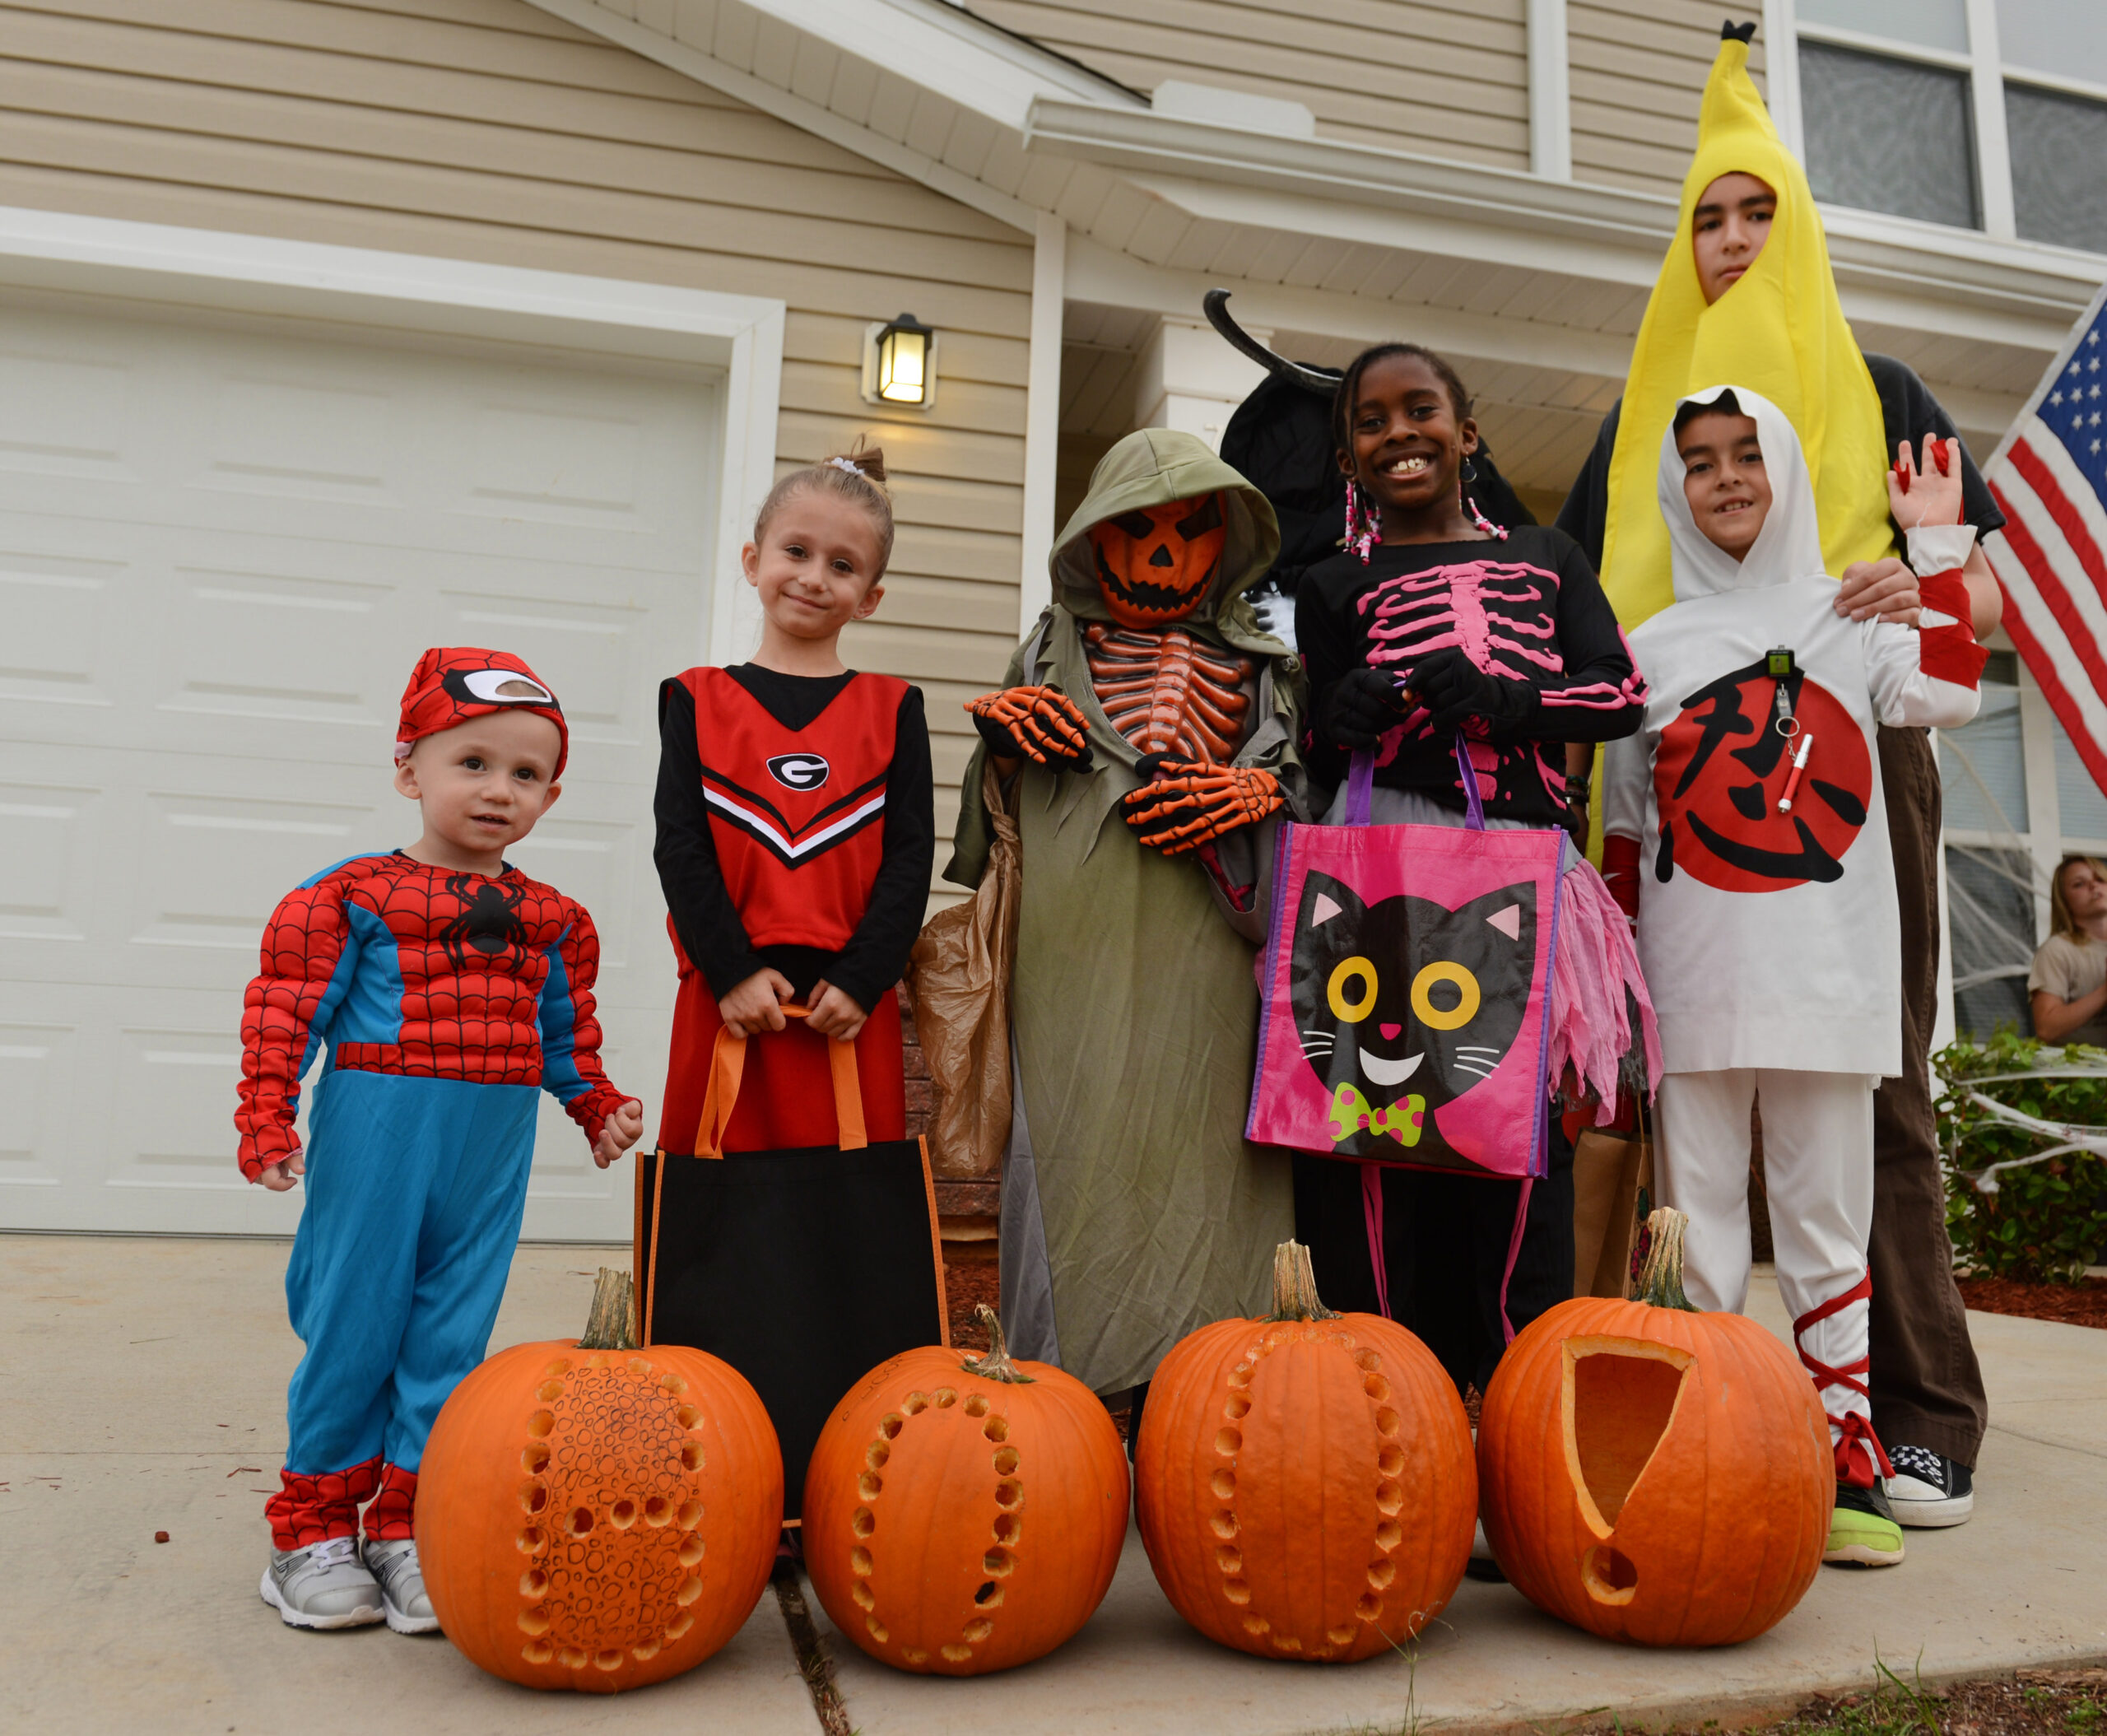 Austin Com Free Halloween Night Family Fun In Austin * indicates a required field. https austin com free halloween night family fun in austin